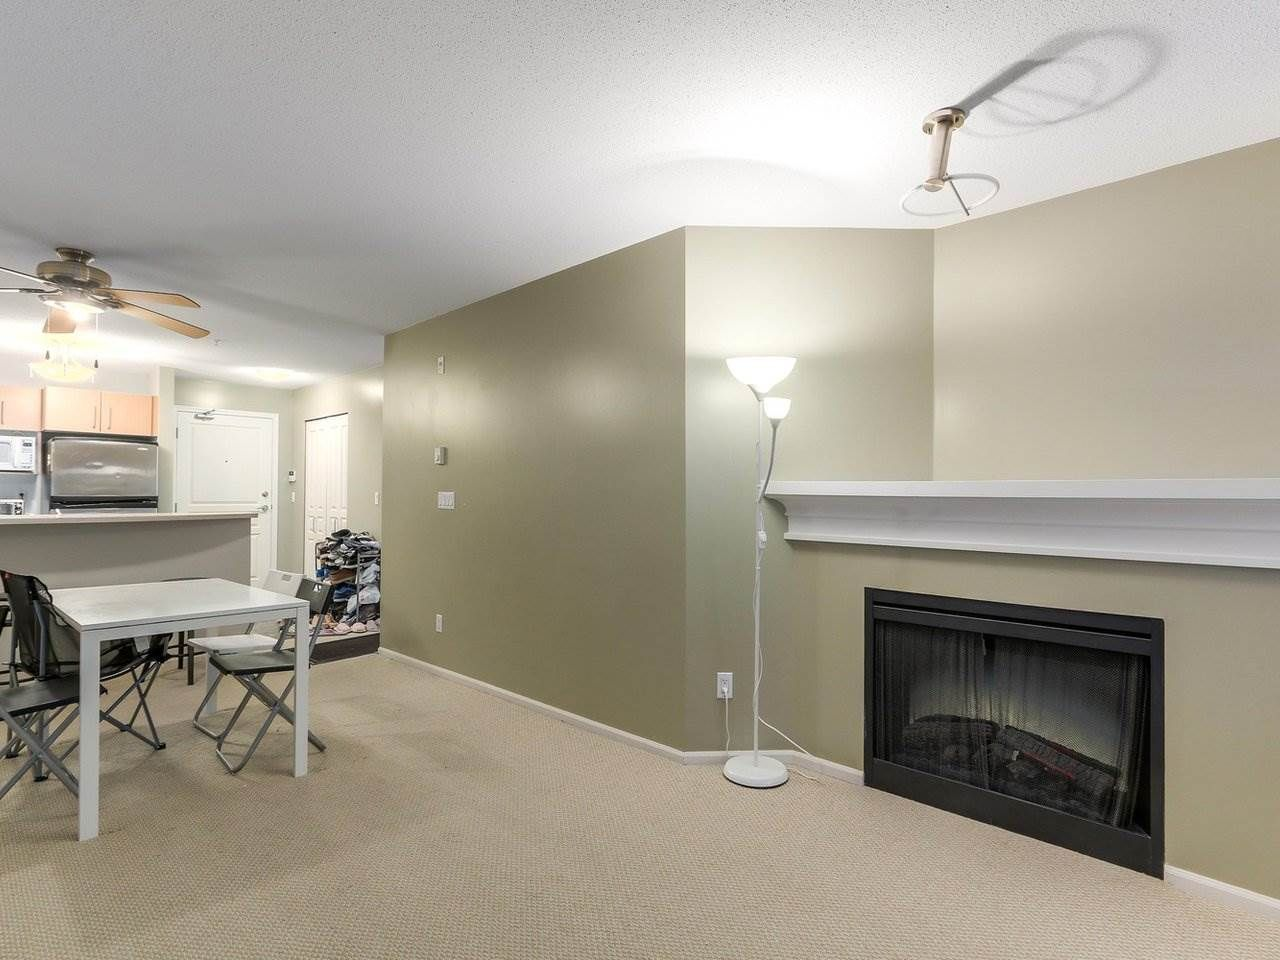 Photo 4: Photos: 205 3388 MORREY Court in Burnaby: Sullivan Heights Condo for sale (Burnaby North)  : MLS®# R2326824